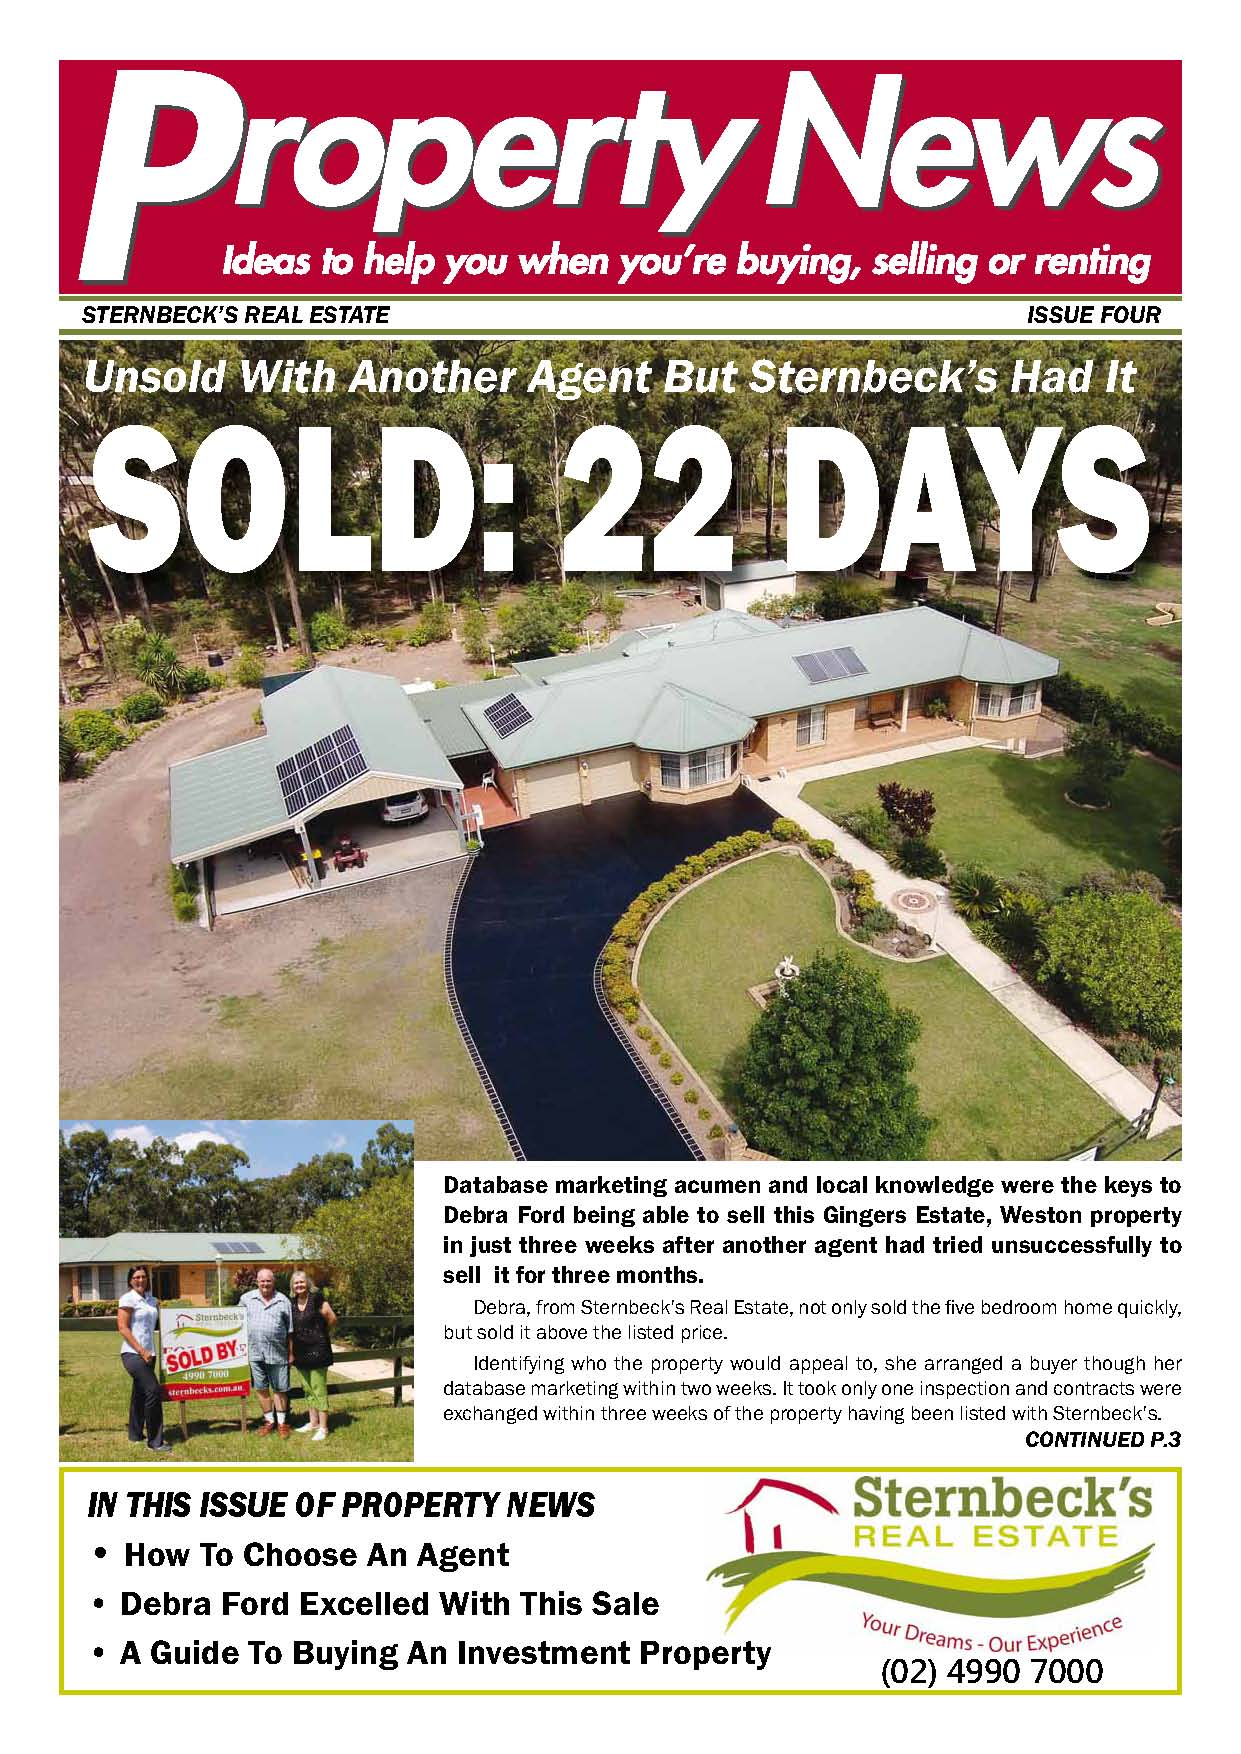 property news newsletters real estate agents marketing the alternative is the old appraisal flyer everyone uses don t waste another moment start using property news